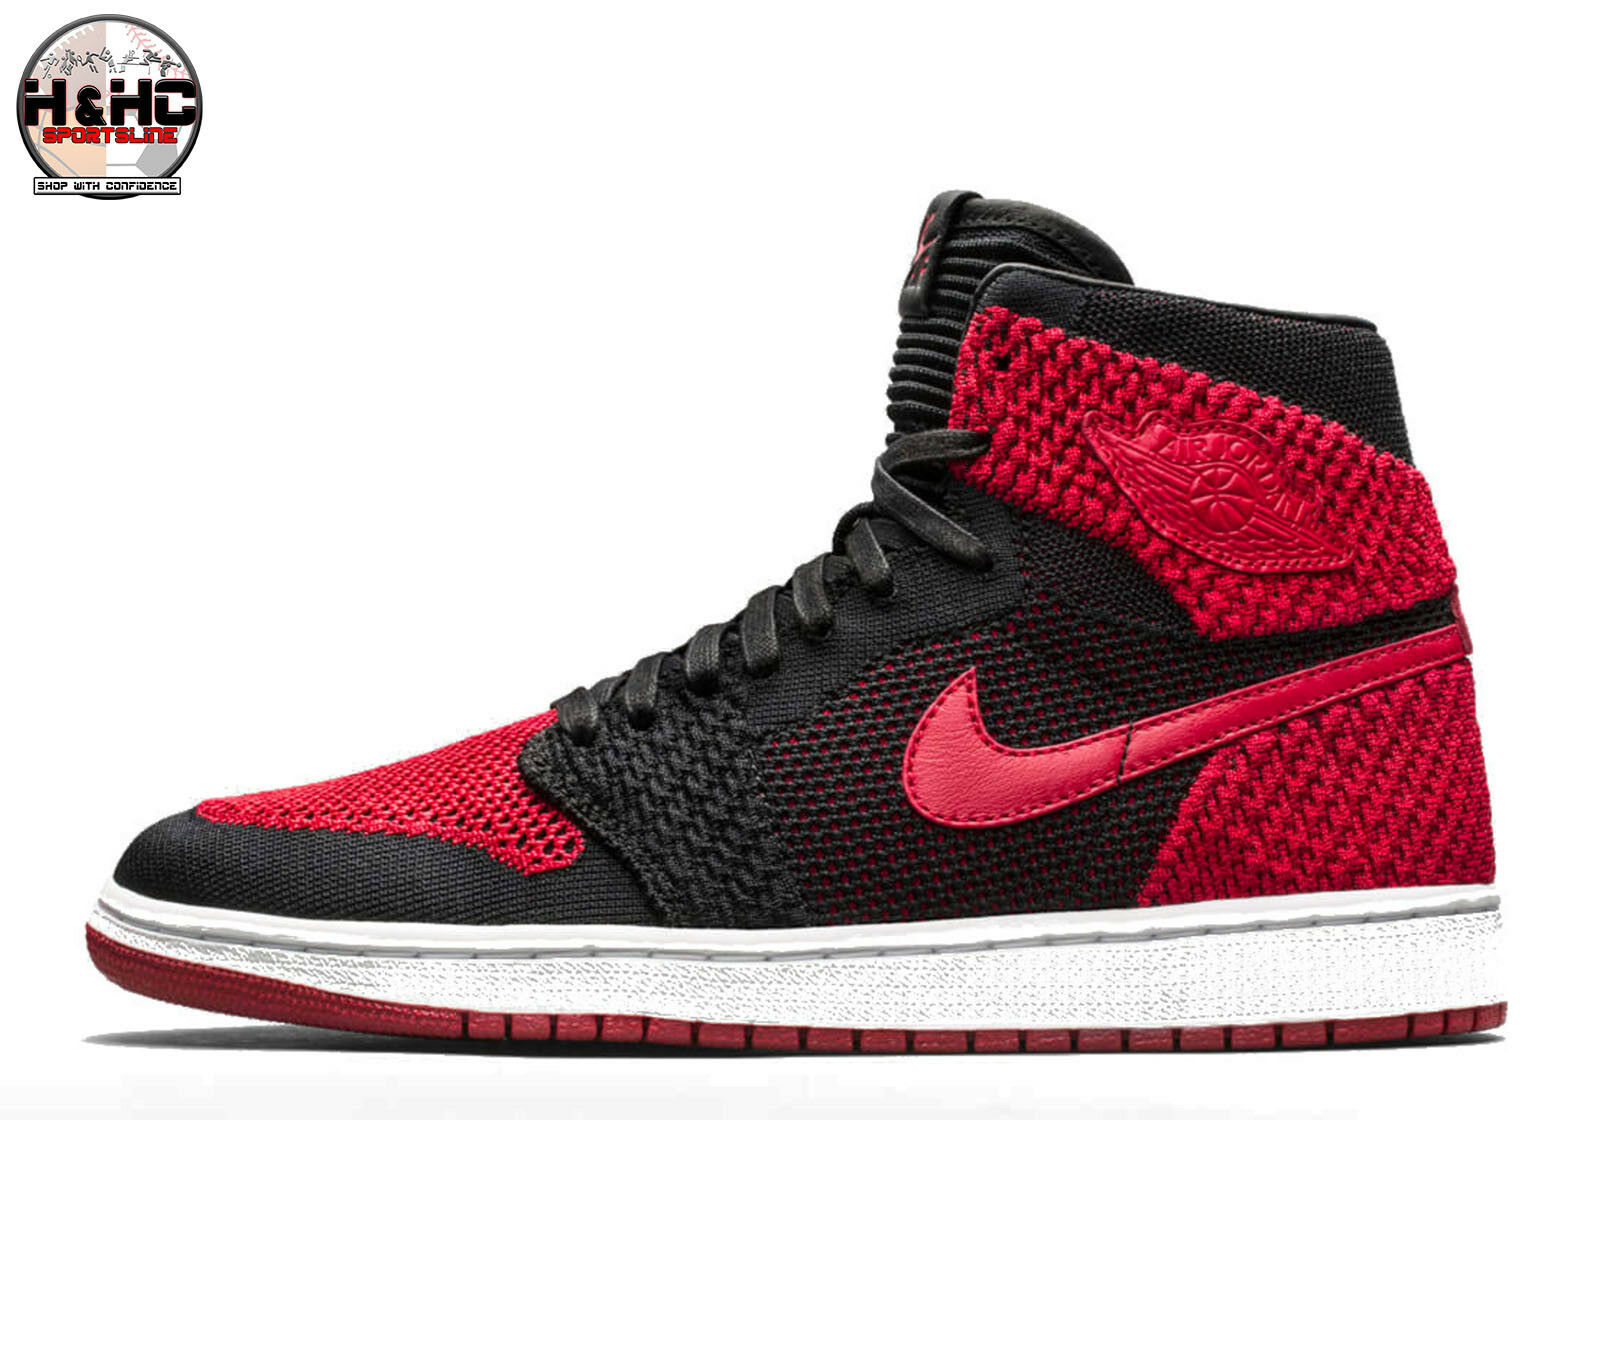 Nike Air Jordan1 Retro Hi Flyknit 919704 001 Black/Varsity Red Men's Shoes Sz 10